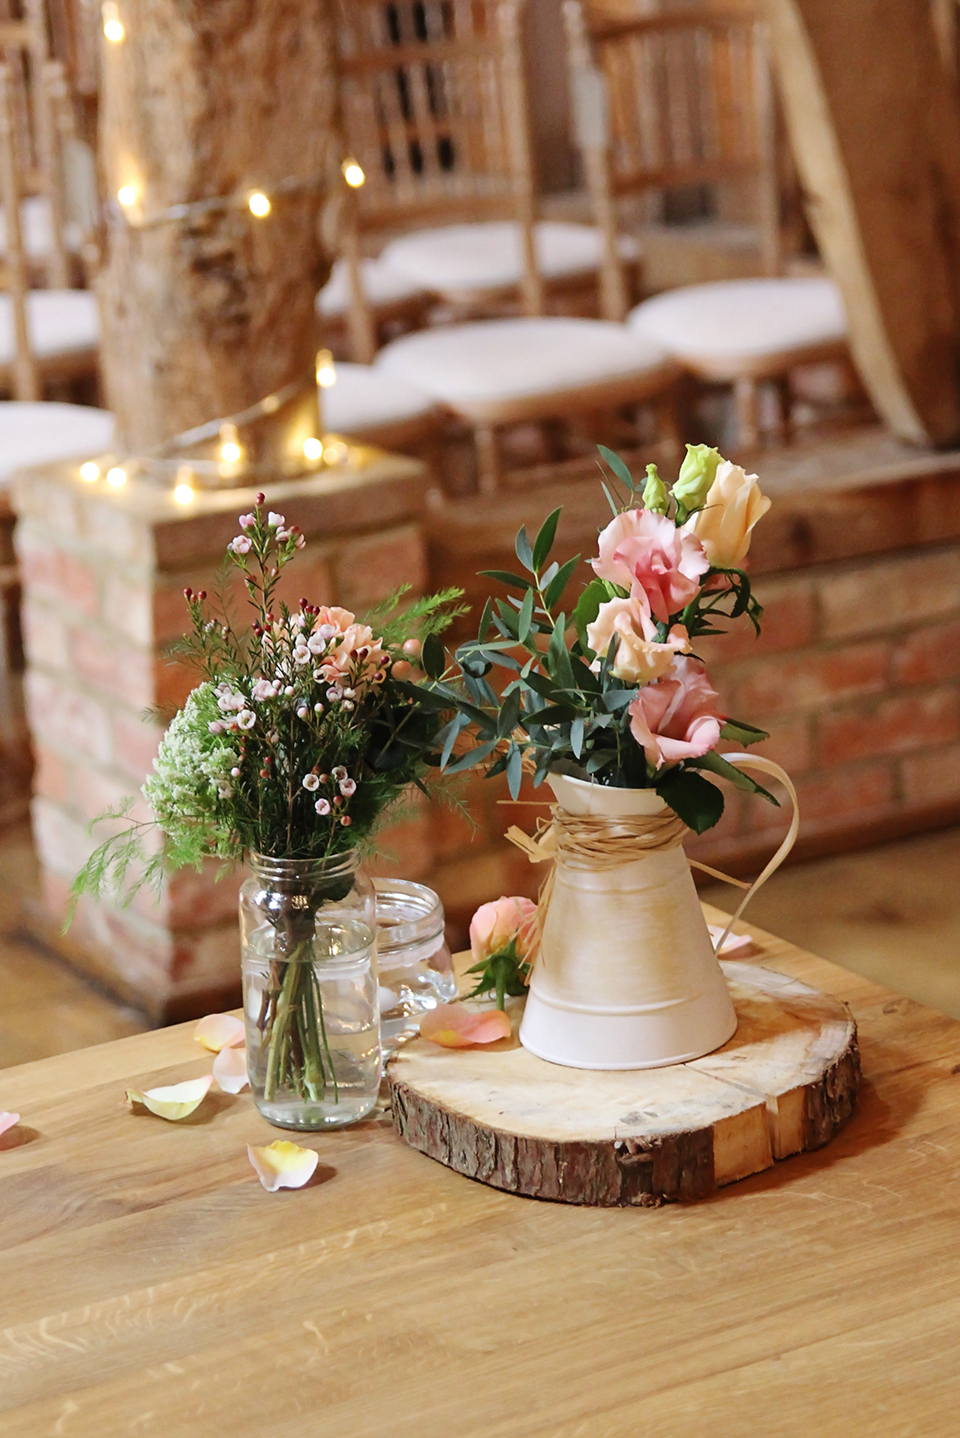 The couple decorated the Rickety Barn at Bassmead Manor Barns with rustic floral jars and log slices